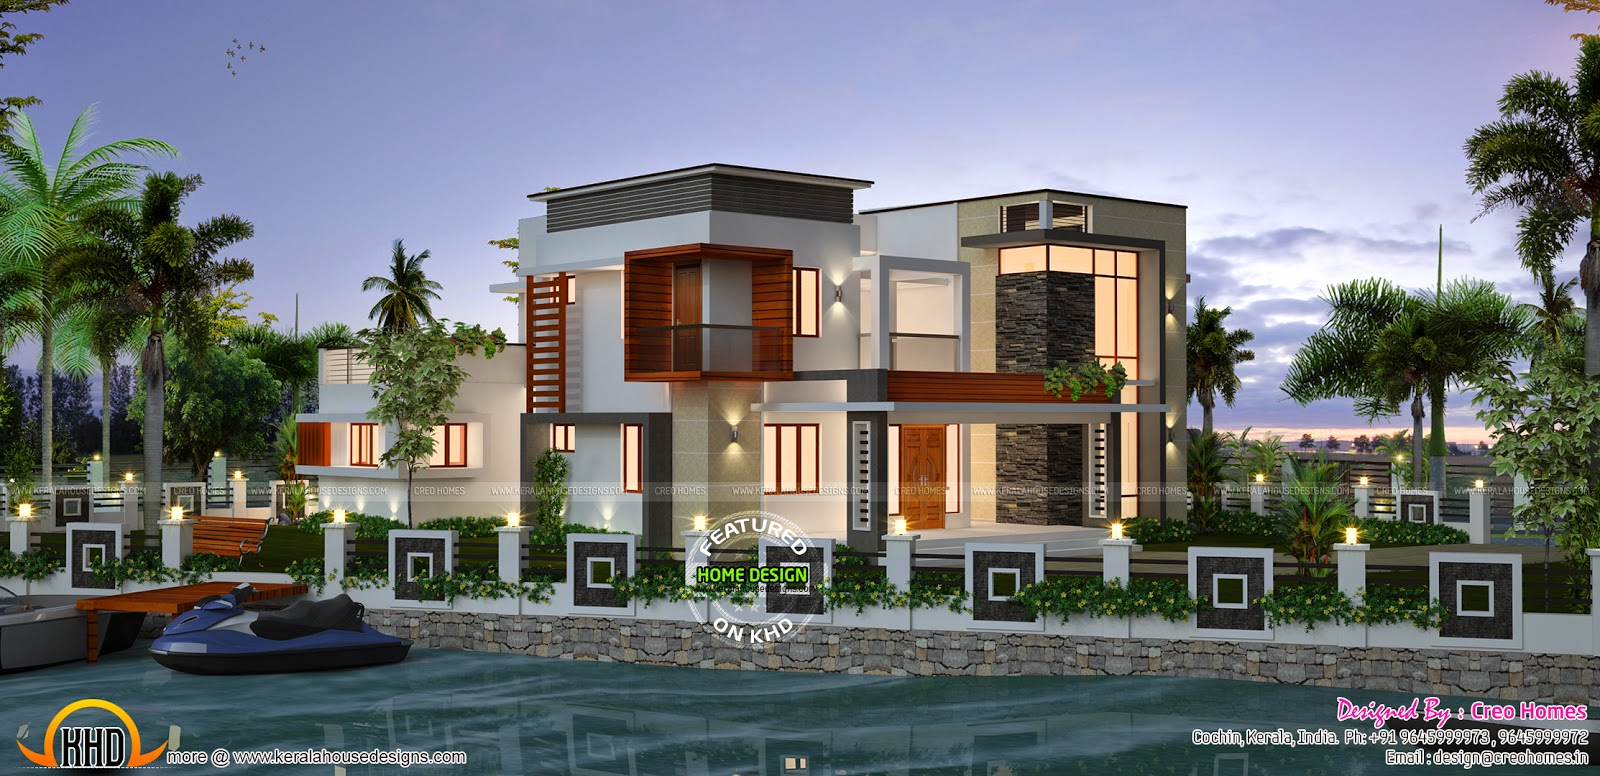 Waterfront house design kerala home design and floor plans for Waterfront house plans designs